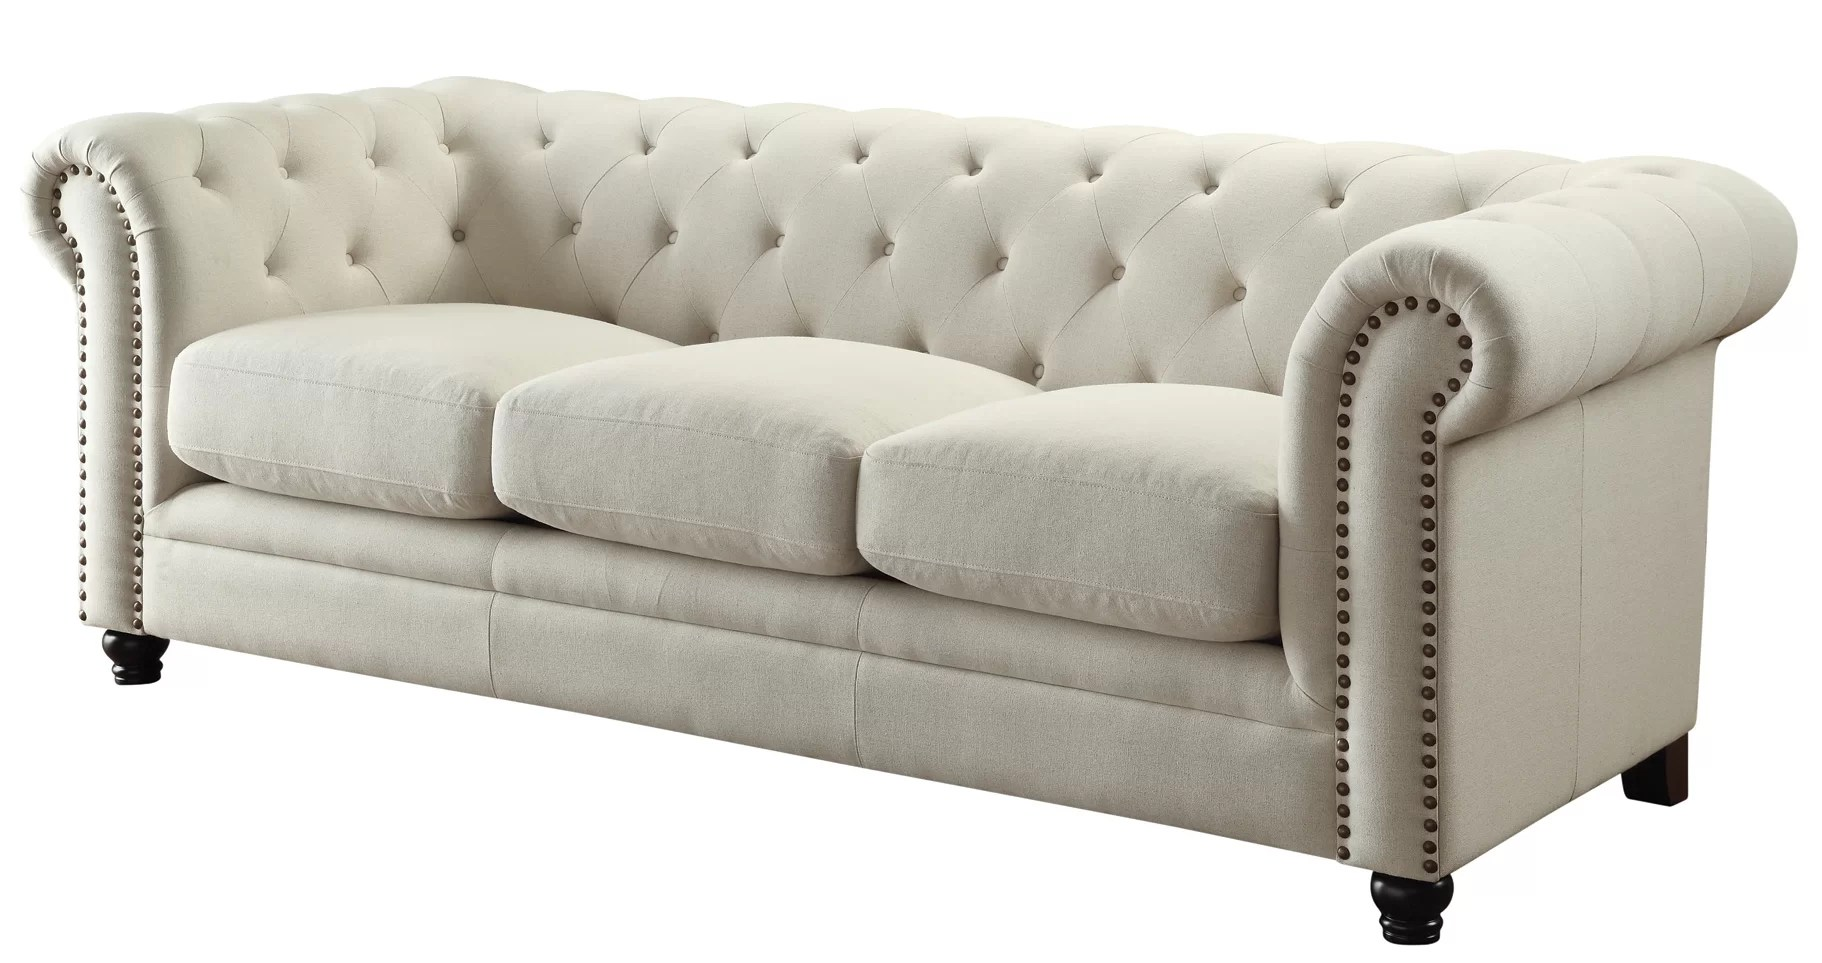 Sofa In Chesterfield Look Dalila Chesterfield Sofa